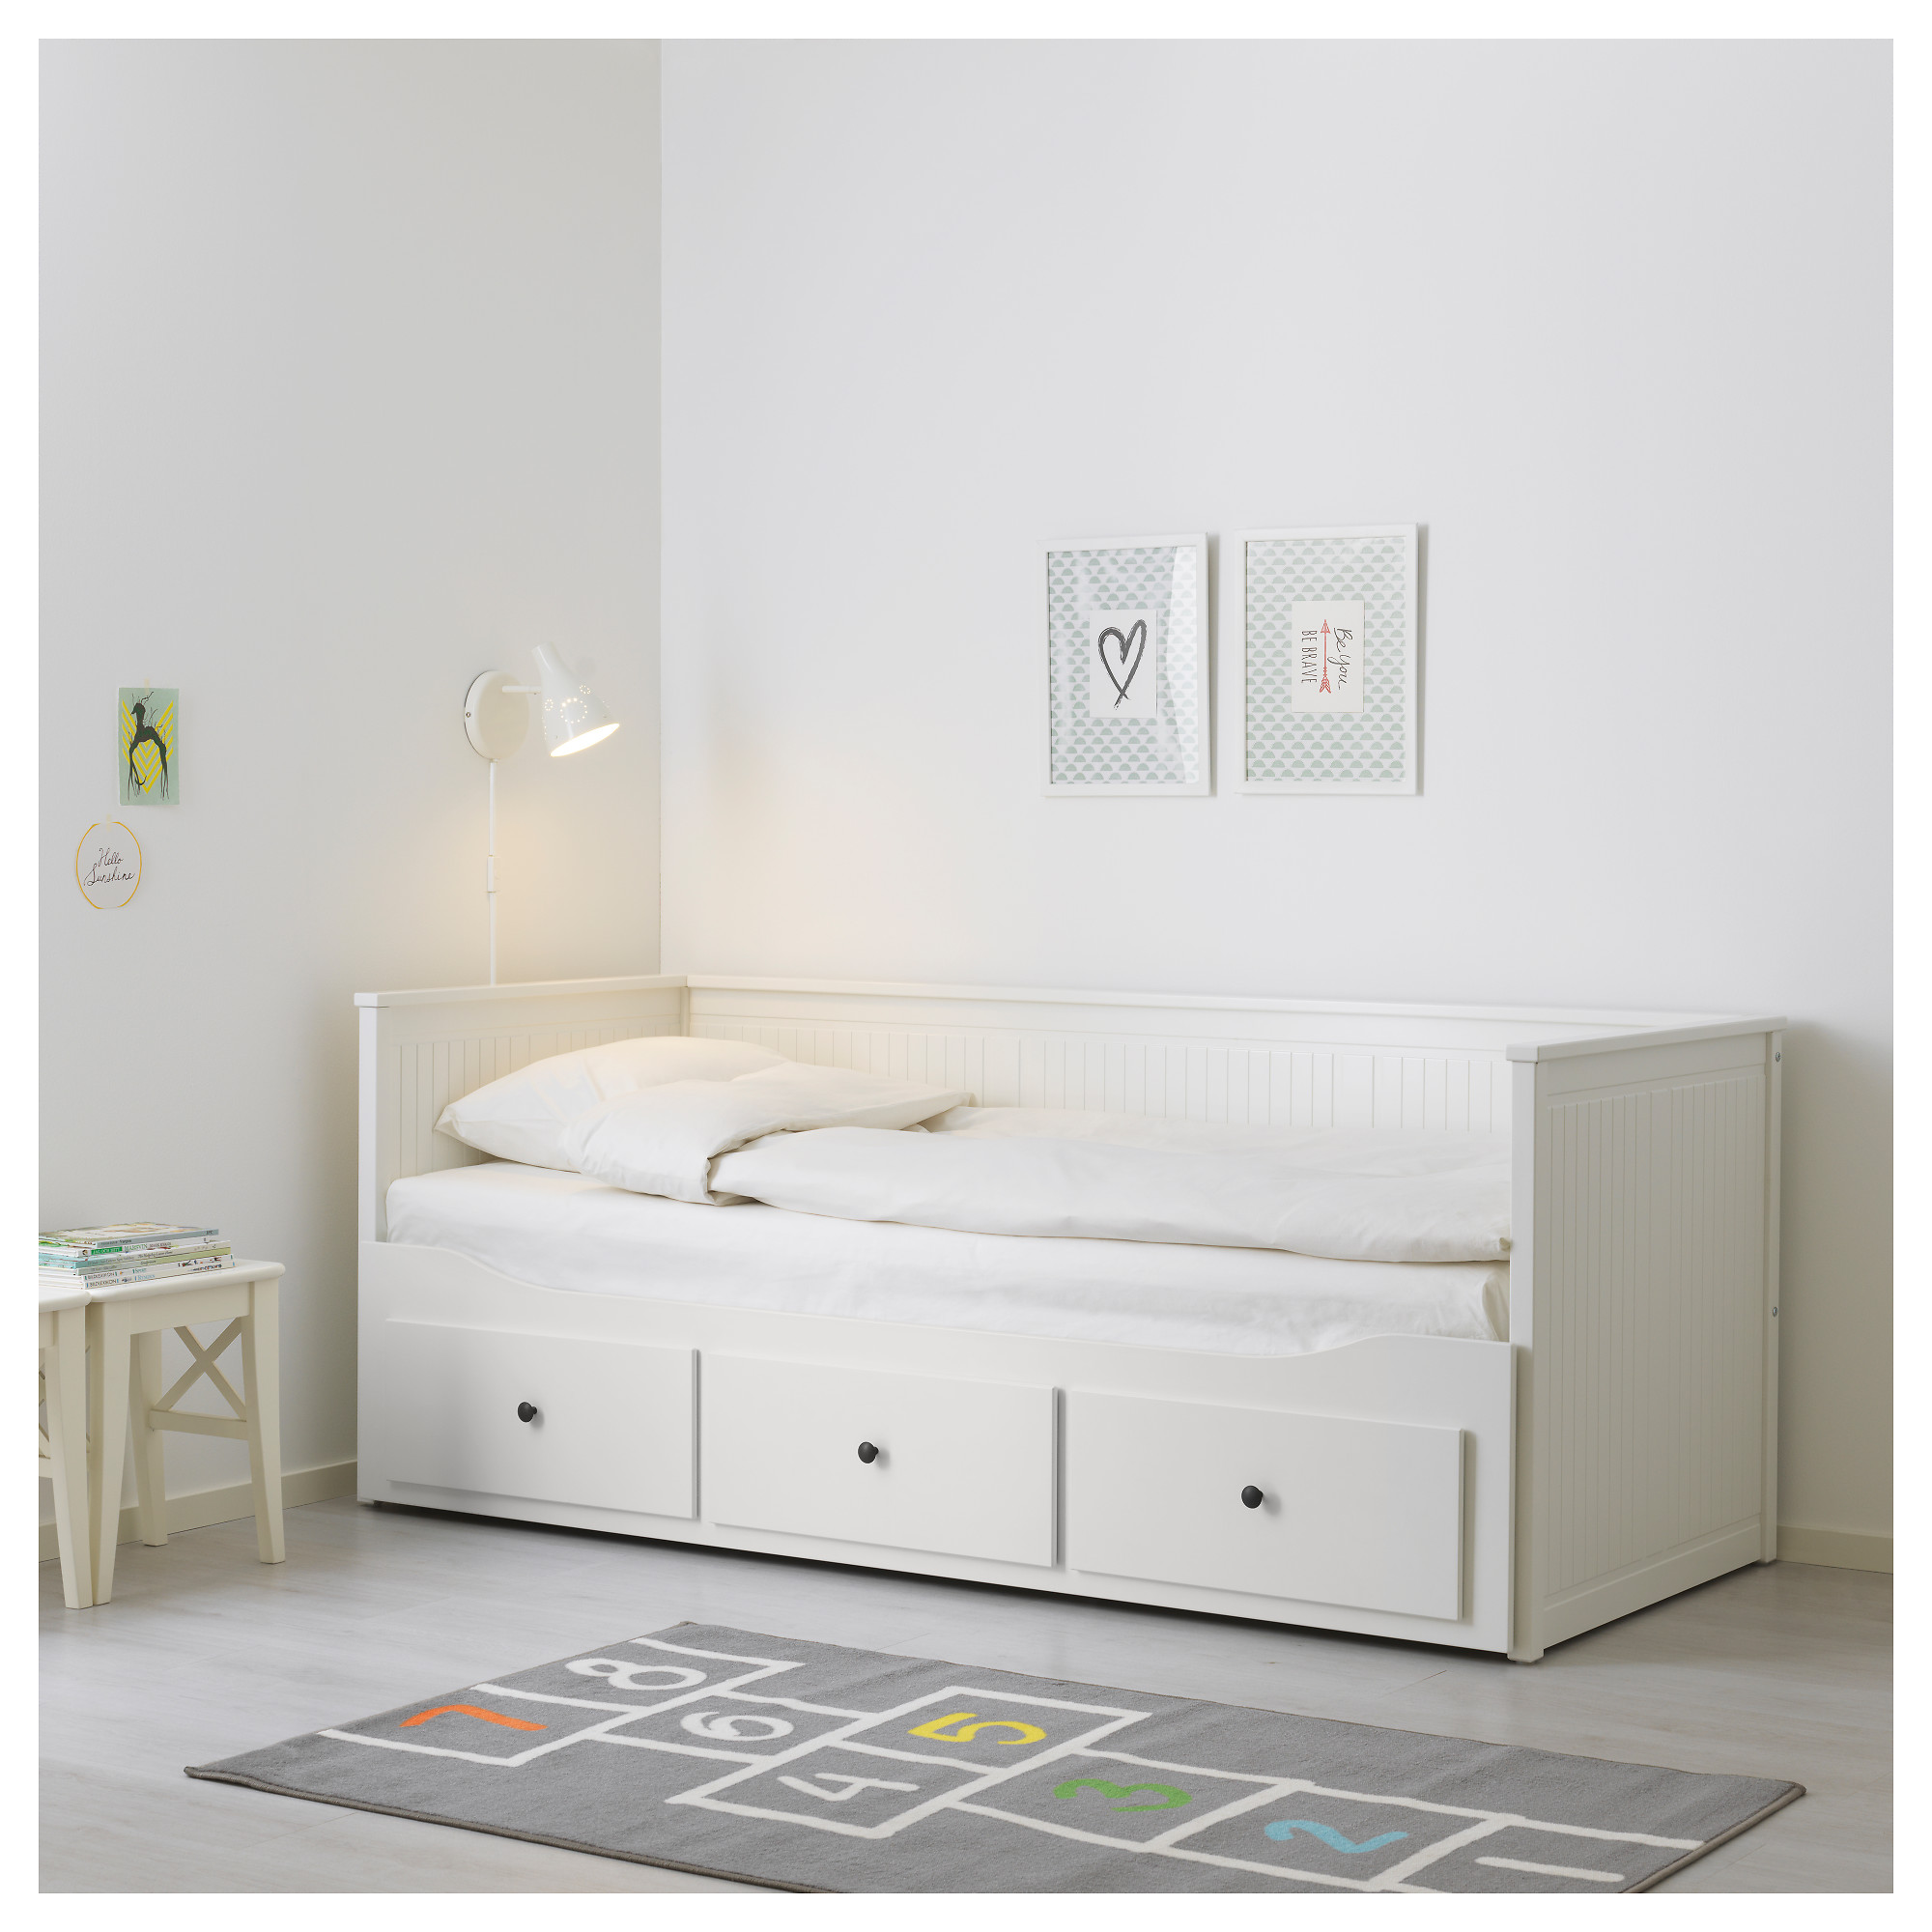 HEMNES Day bed frame with 3 drawers IKEA